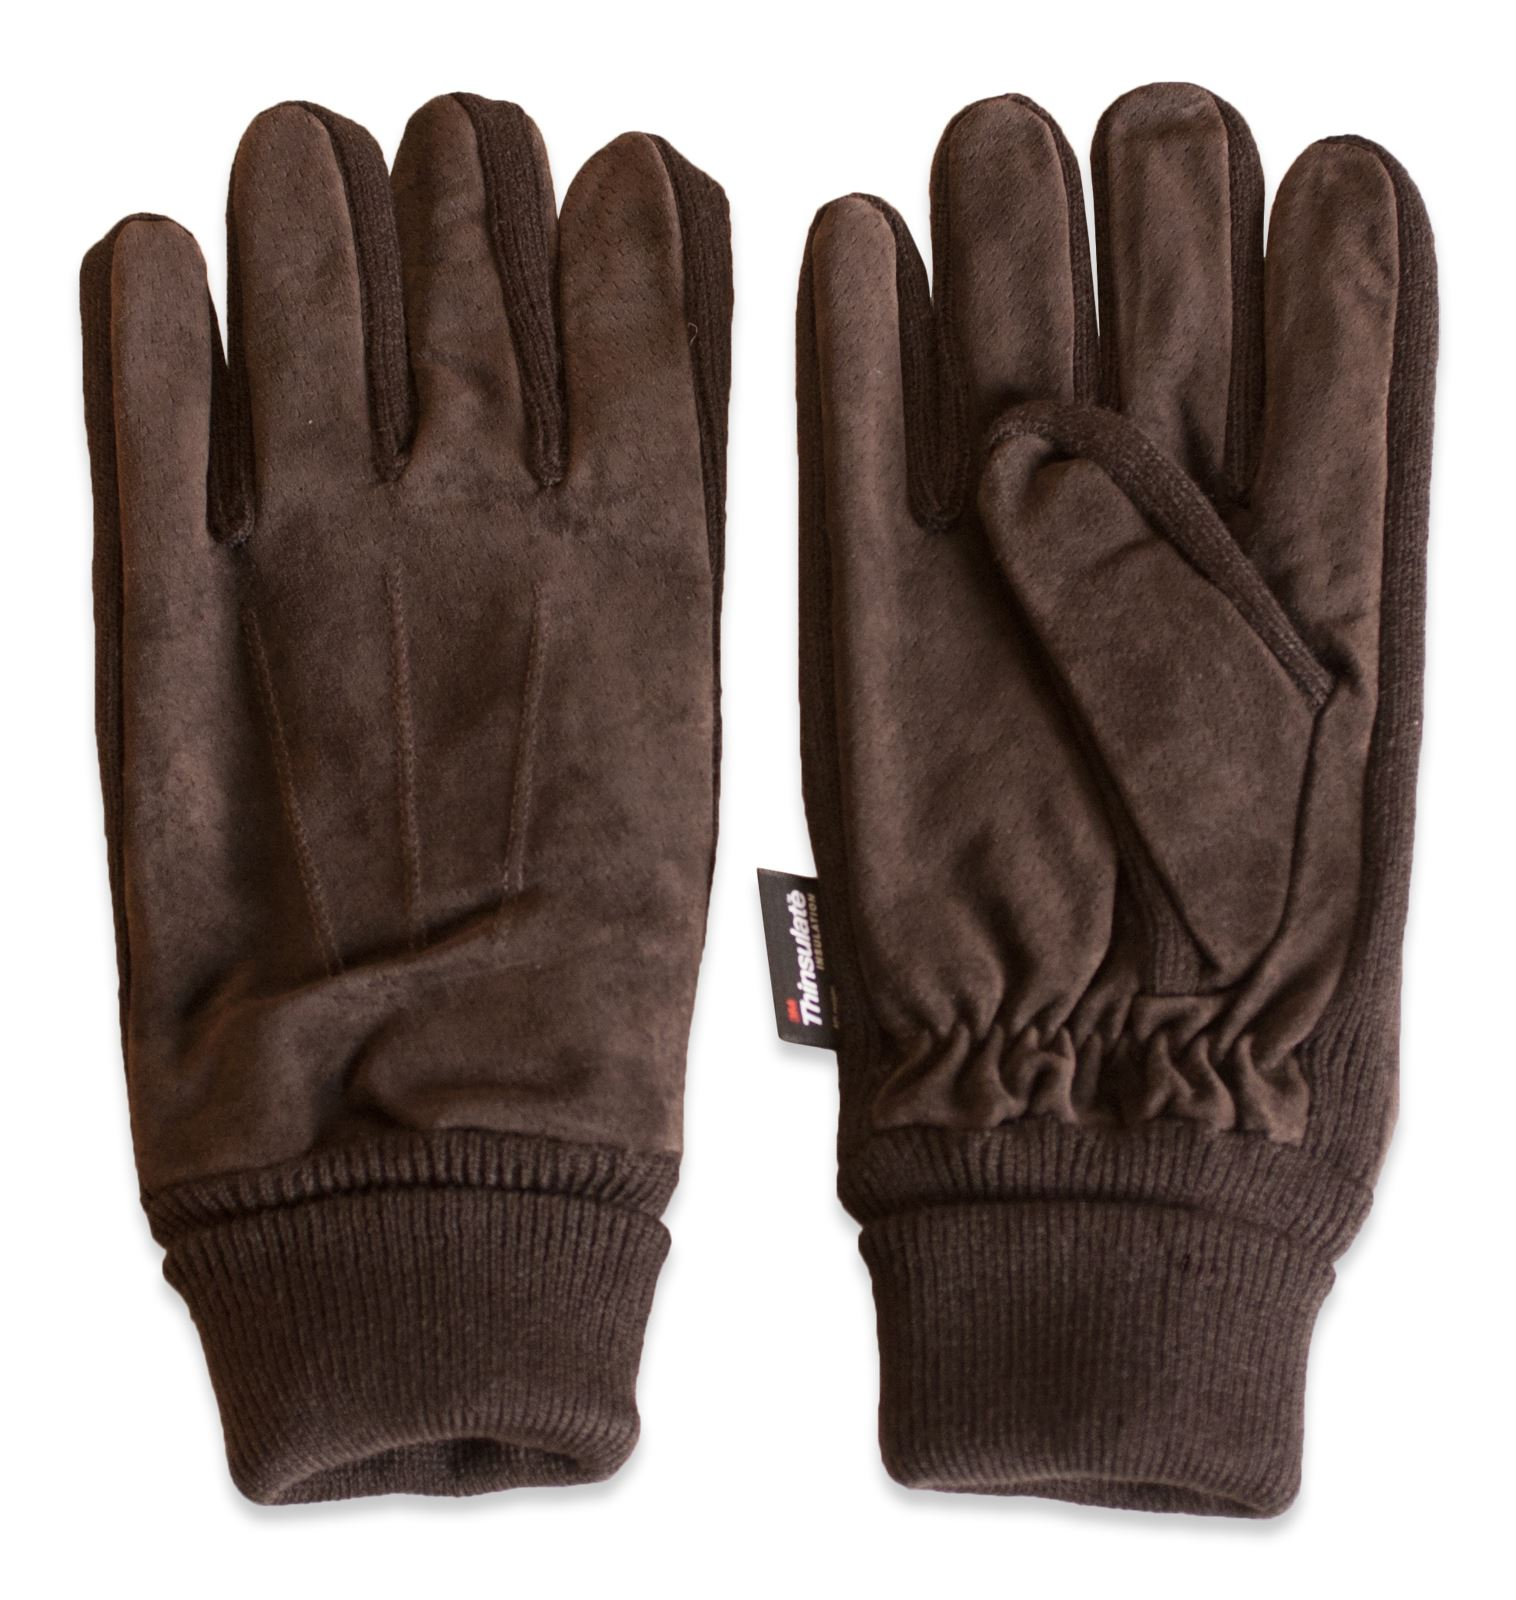 Mens leather gloves with cuff - Quivano Mens Suede Leather Gloves Thinsulate Lined Elasticated